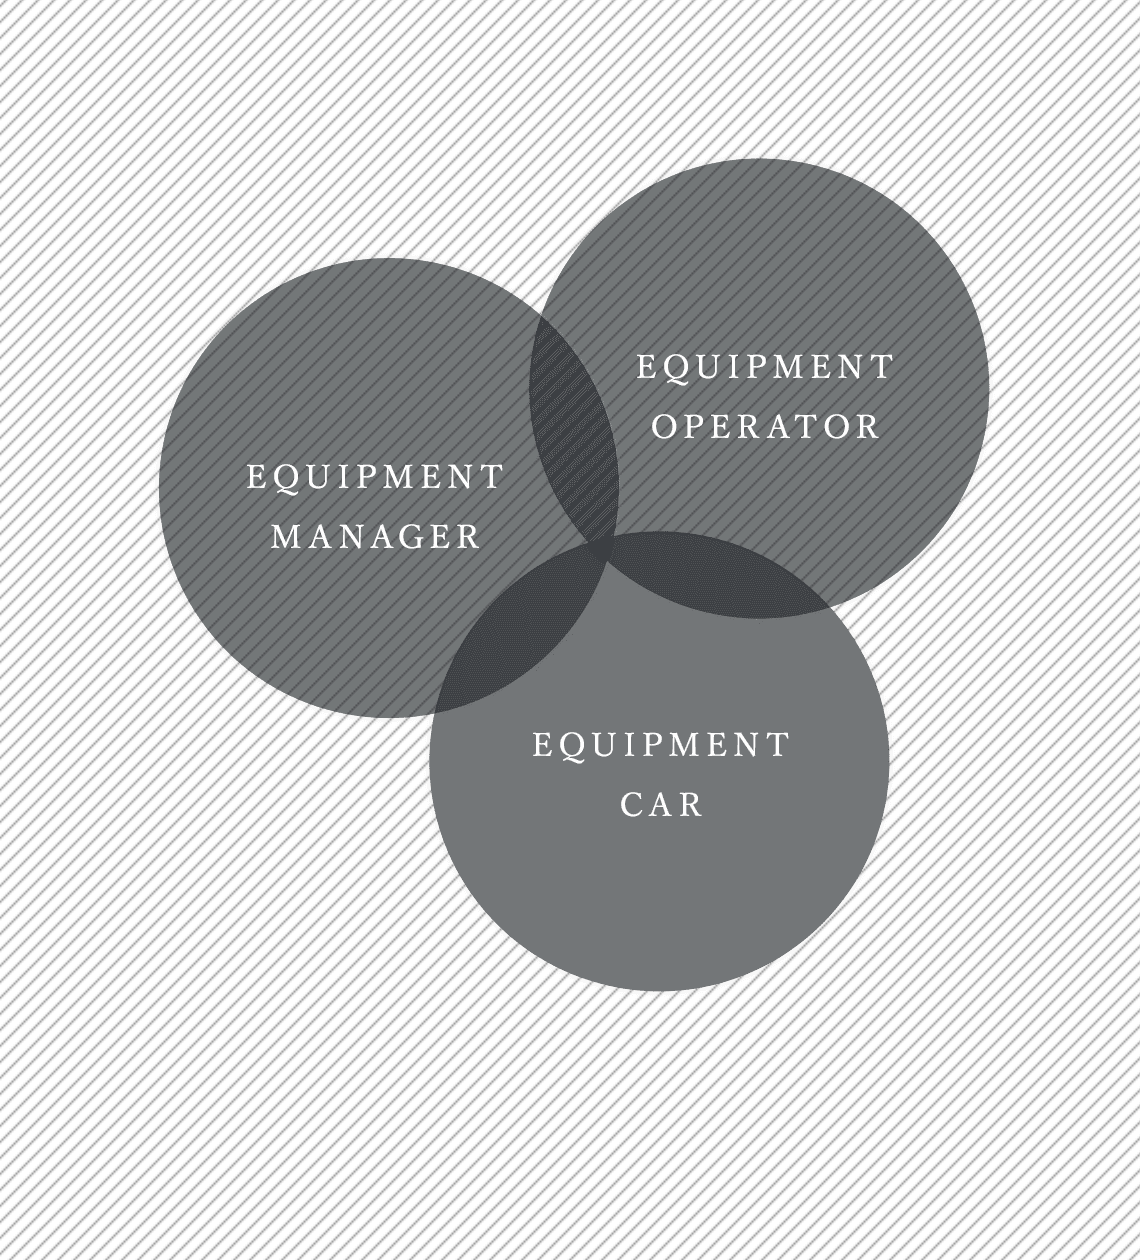 EQUIPMENT OPERATOR / EQUIPMENT MANAGER / EQUIPMENT CAR